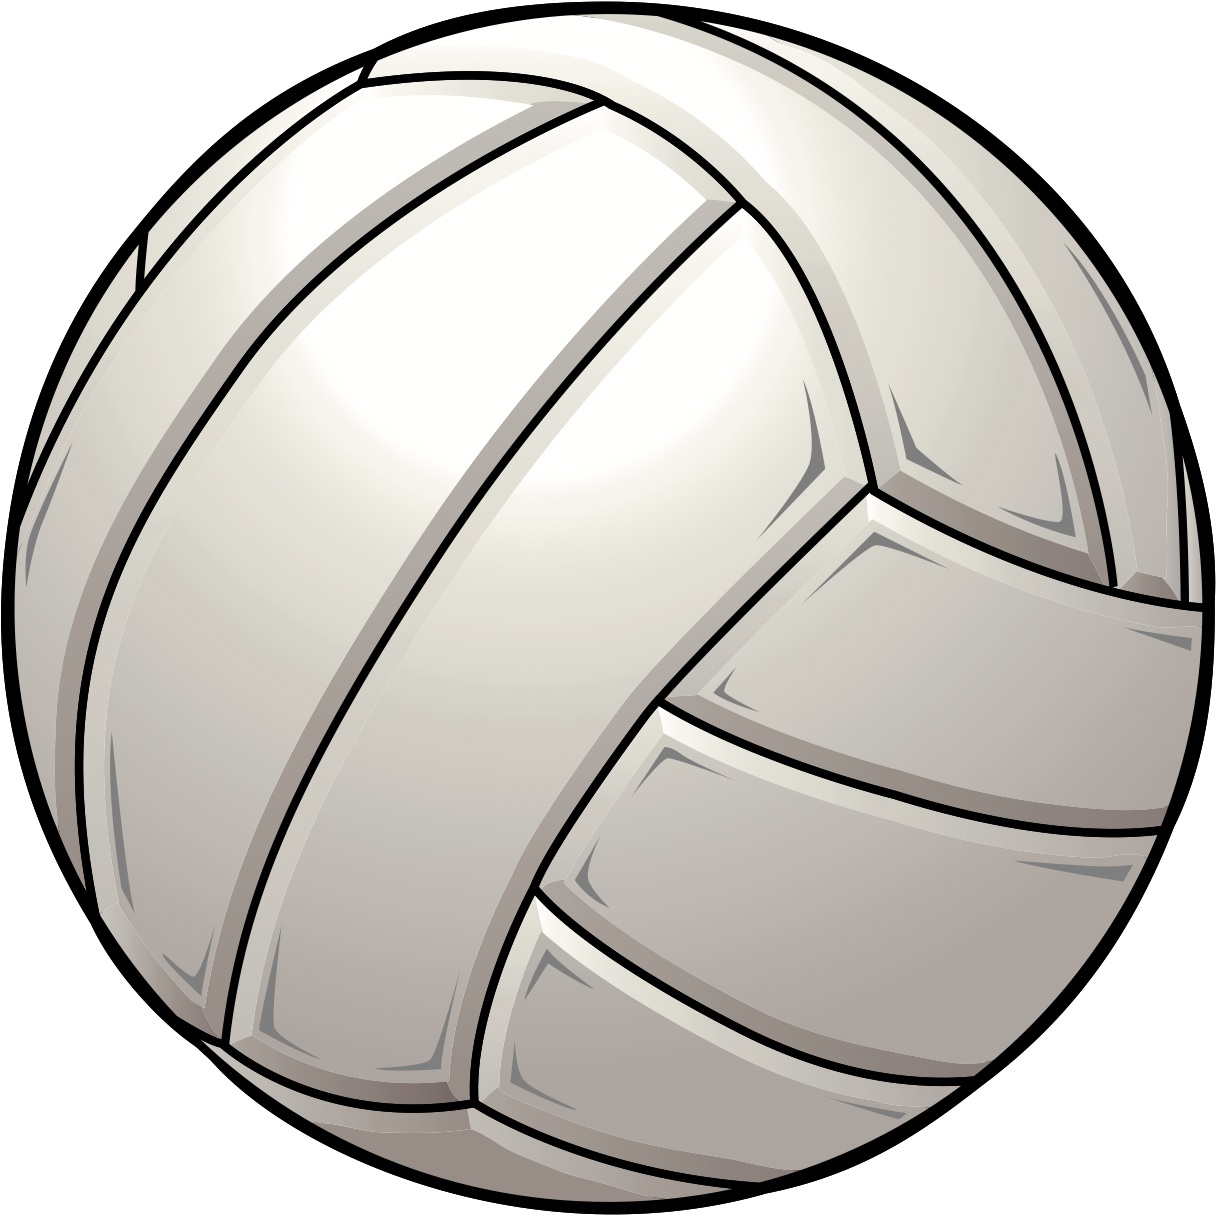 Free Volleyball Clipart Free .-Free Volleyball Clipart Free .-8